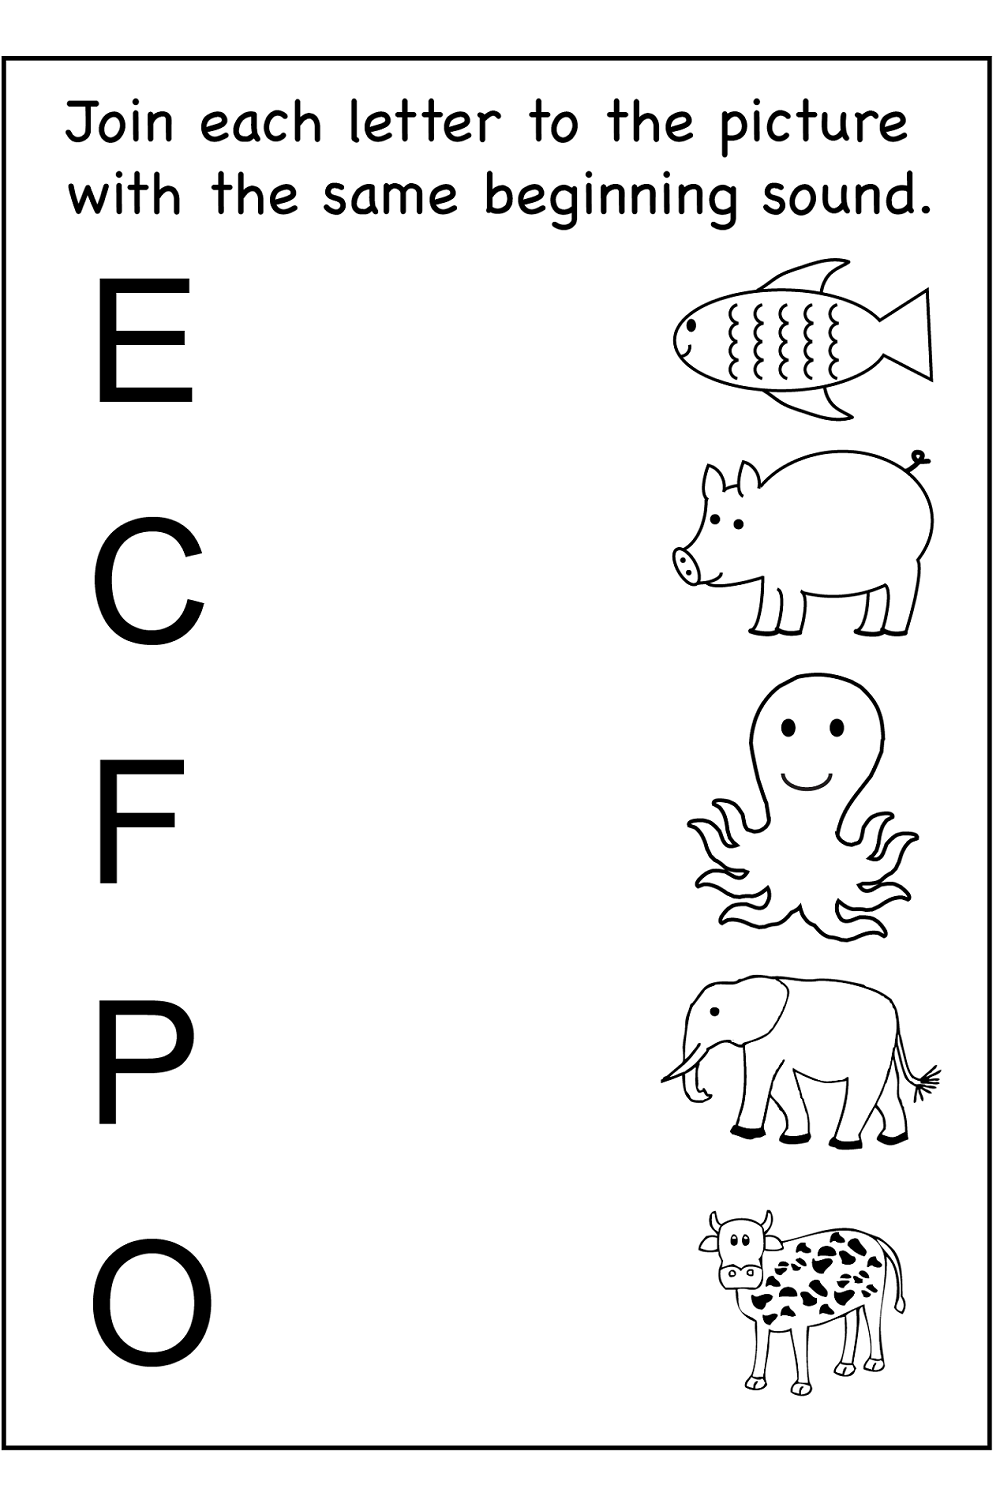 kids activity worksheets for preschool